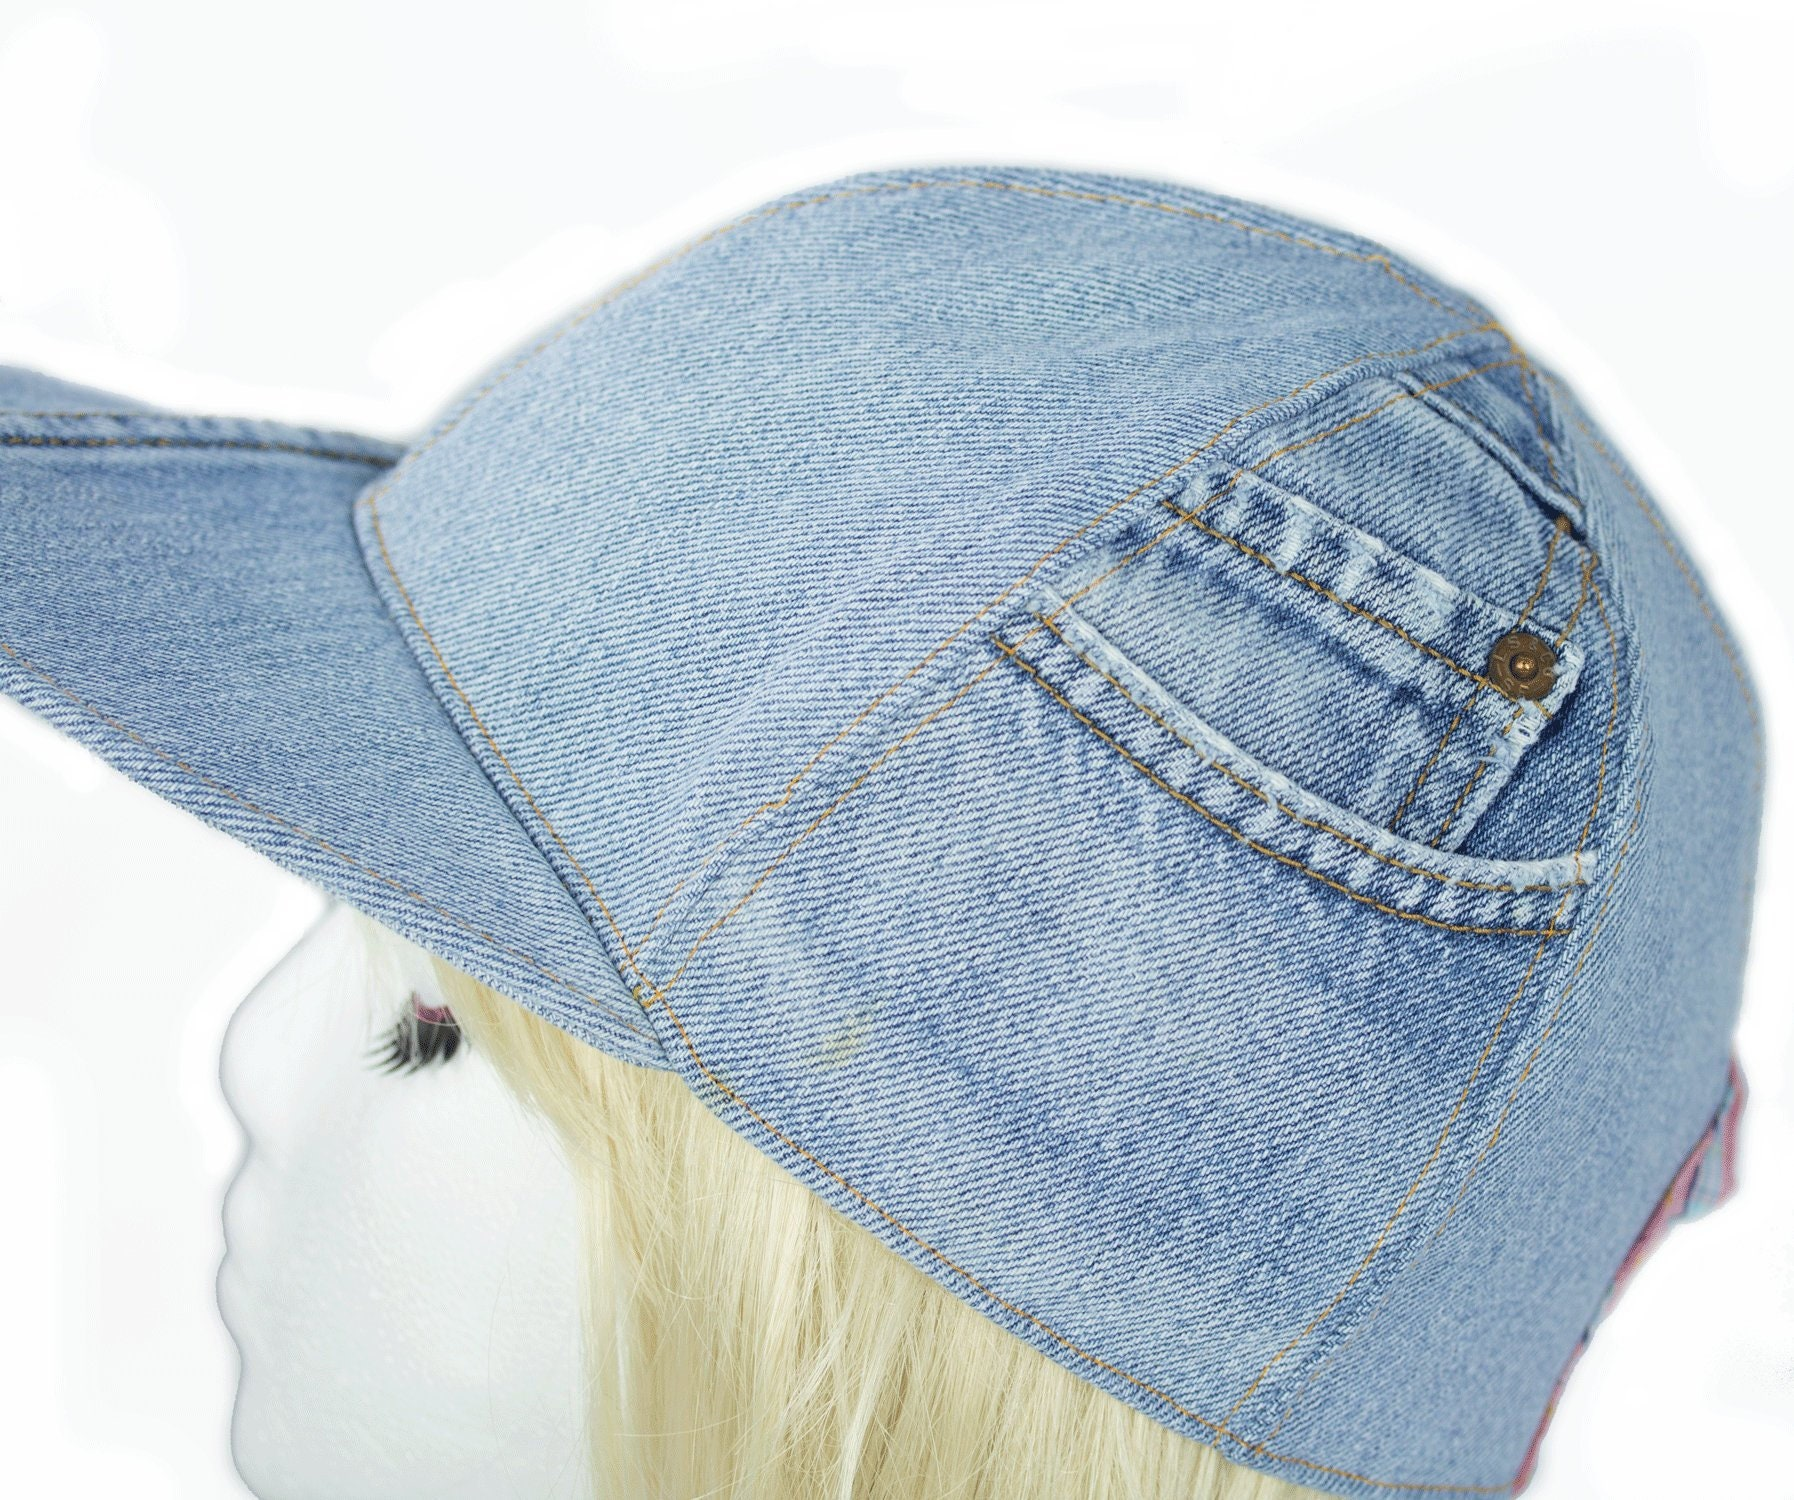 Womens Baseball Cap in Washed Denim Light Blue Denim  5edc9ff6033c